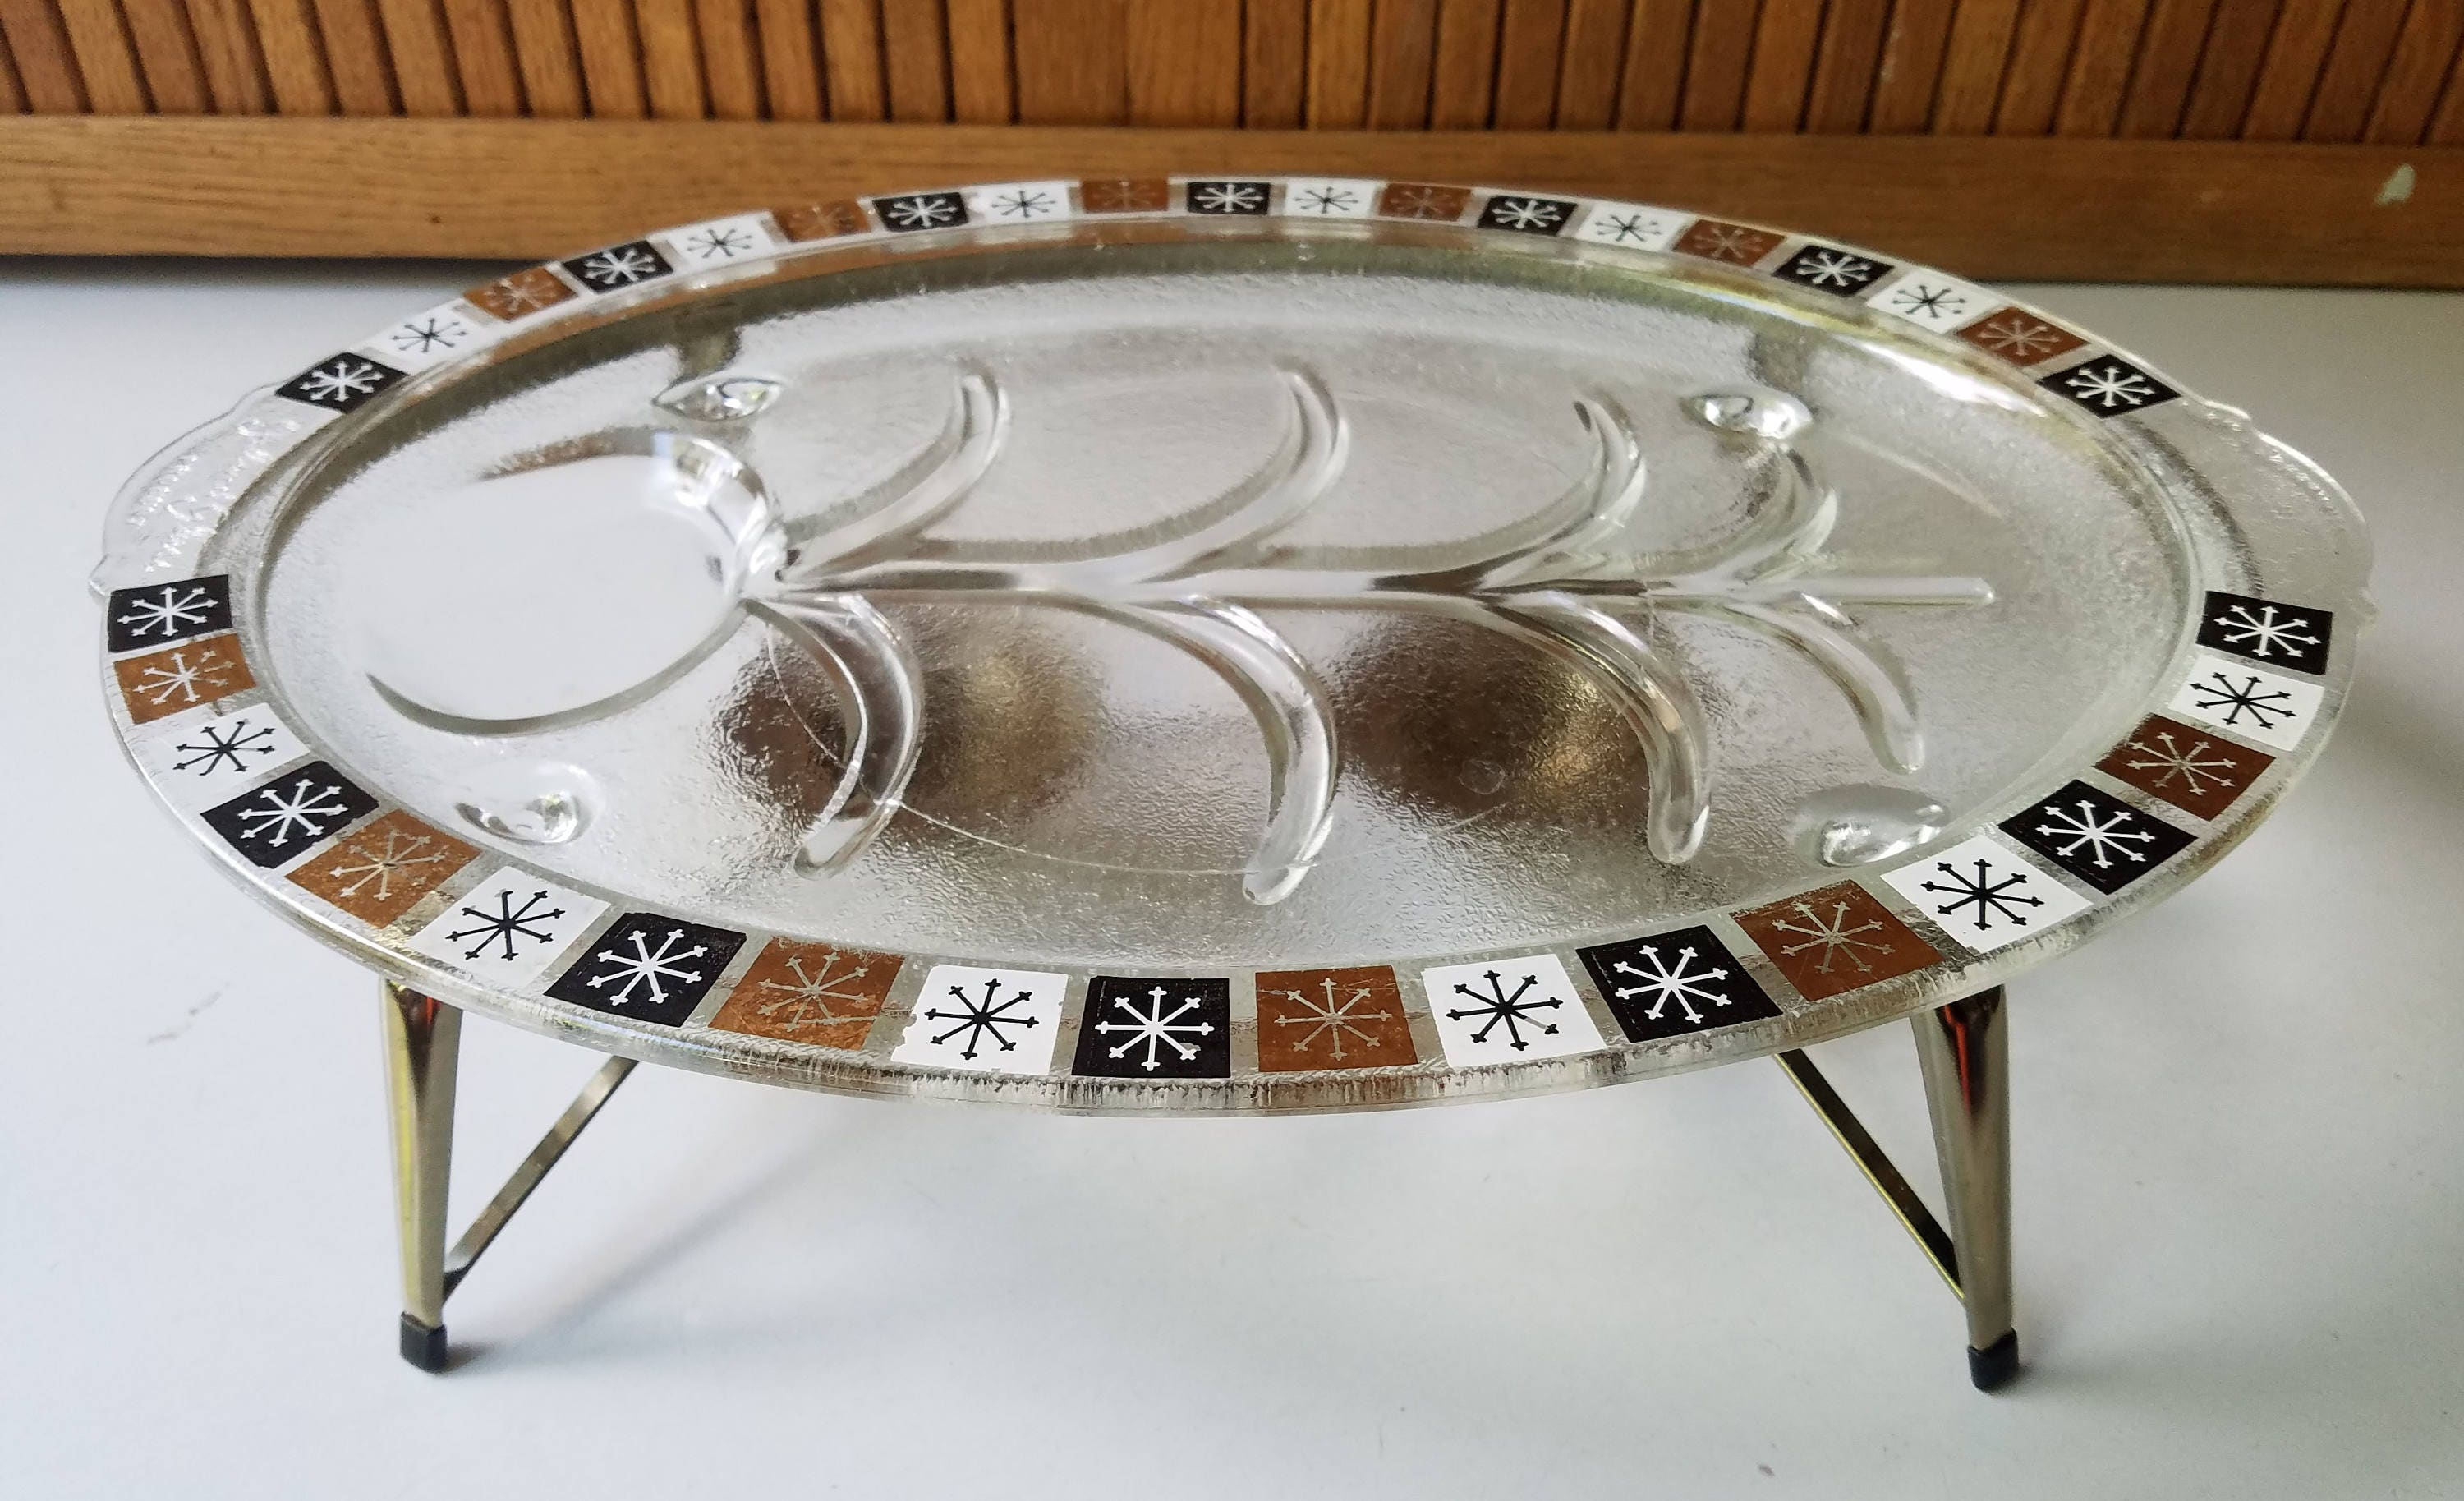 Vintage Inland Glass Atomic Snowflake Serving Platter with Warming